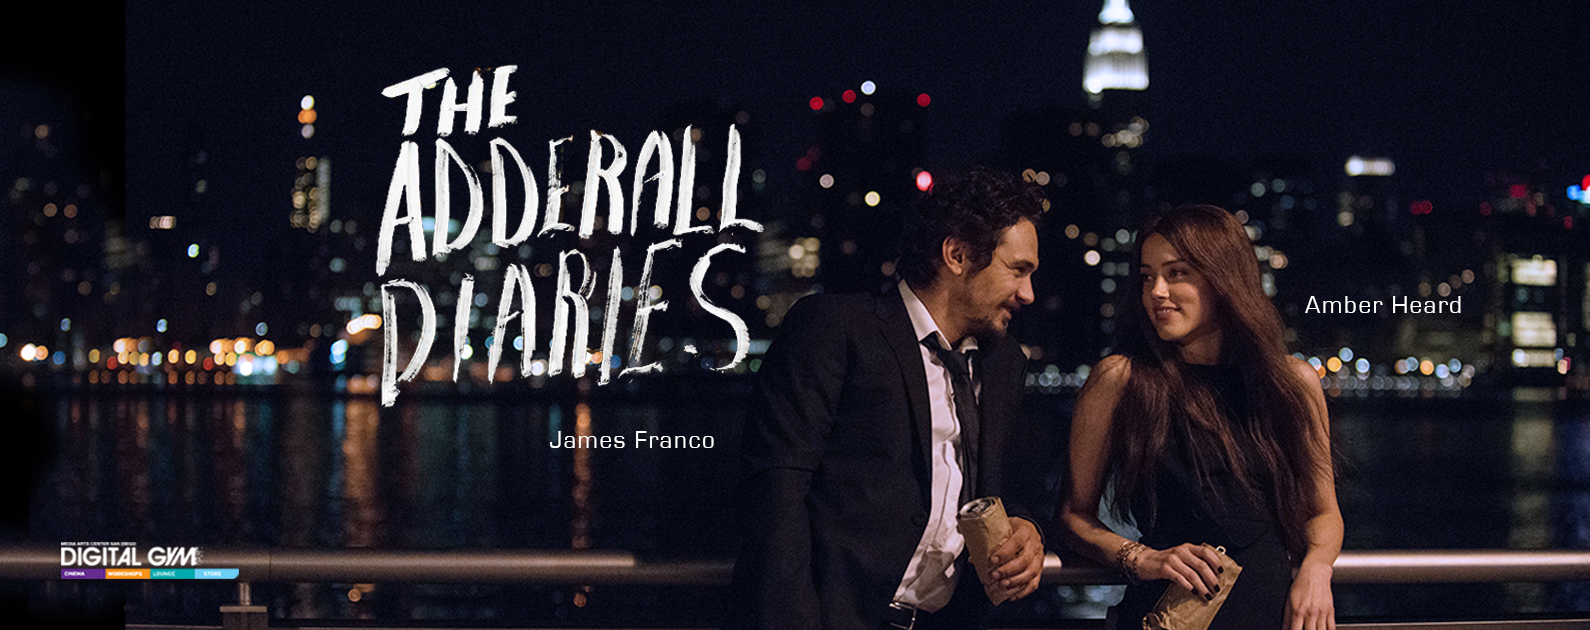 Murder Mystery The Adderall Diaries Starring James Franco (April 15 – 21)